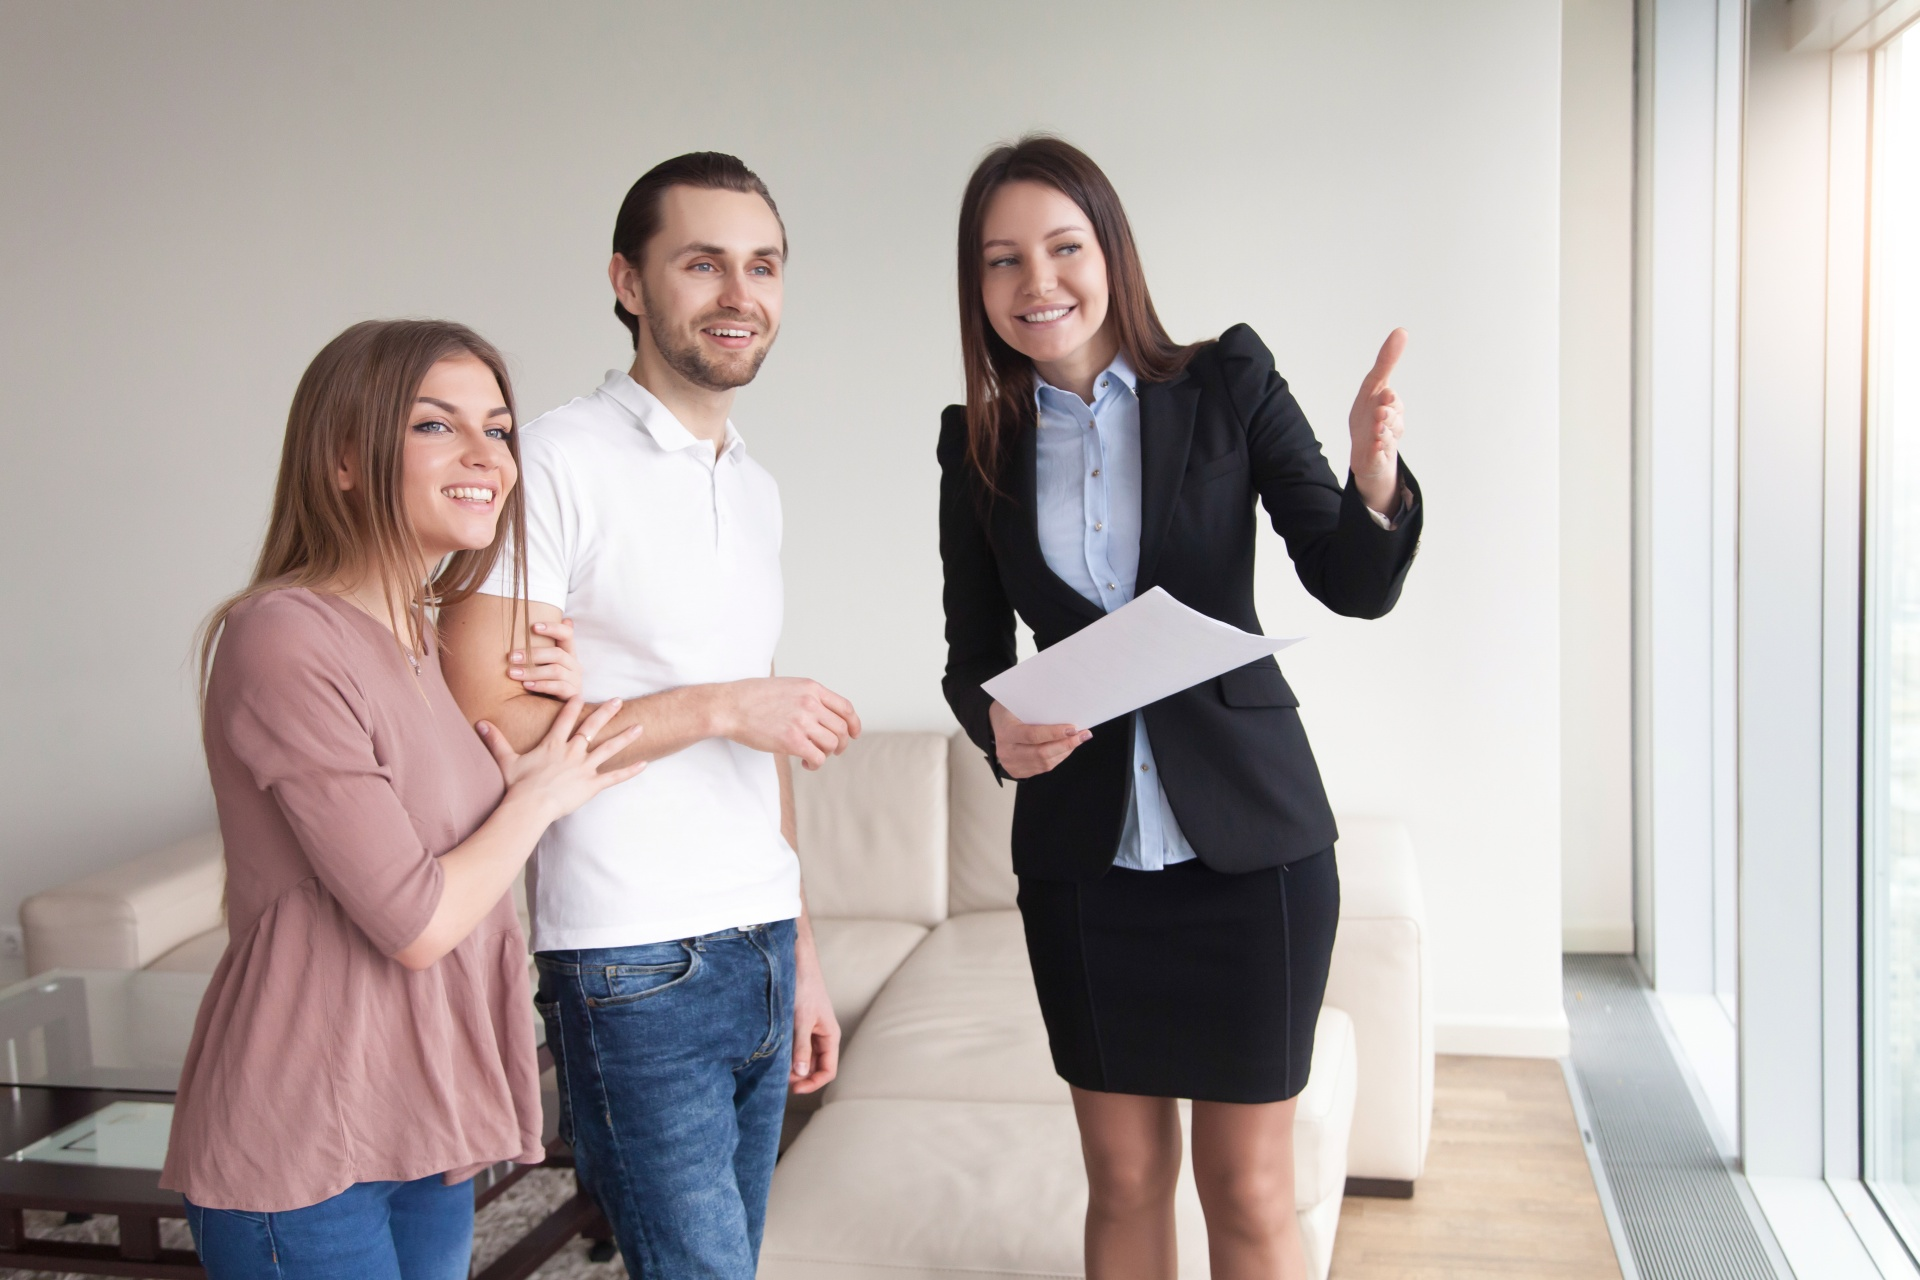 Ontario Real Estate Agents Help Buyers Find The Properties That Suit Them Best